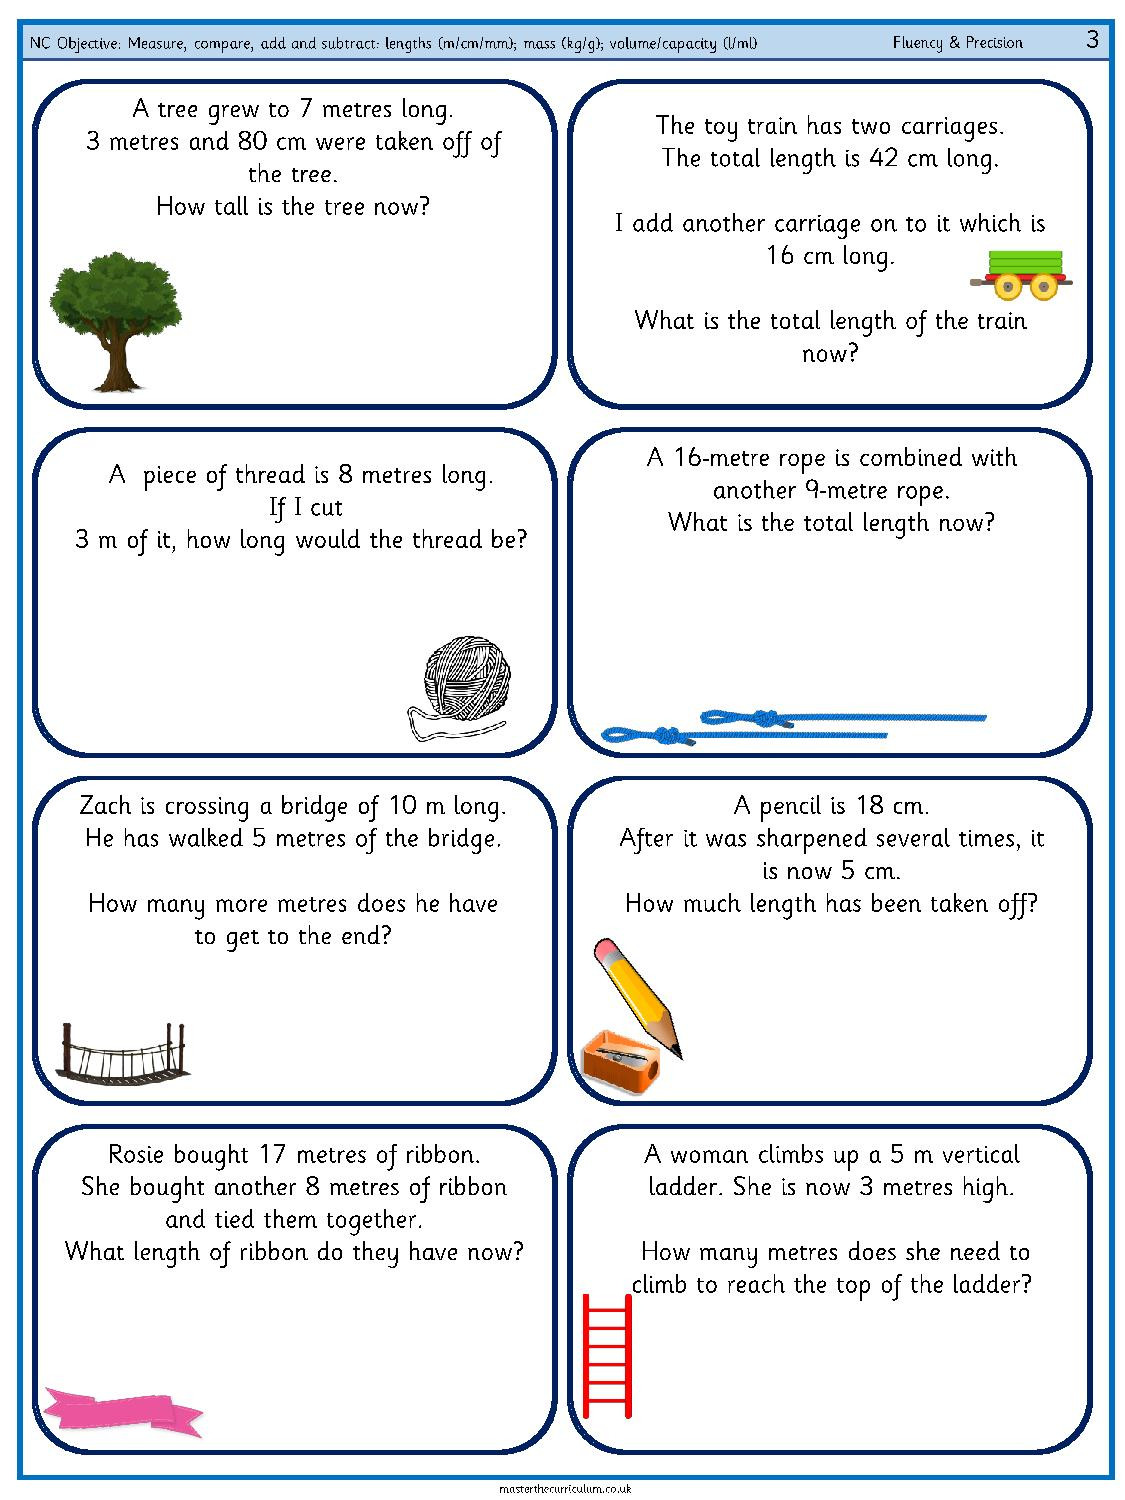 Capacity Maths Worksheets Measure Pare Add and Subtract Lengths M Cm Mm